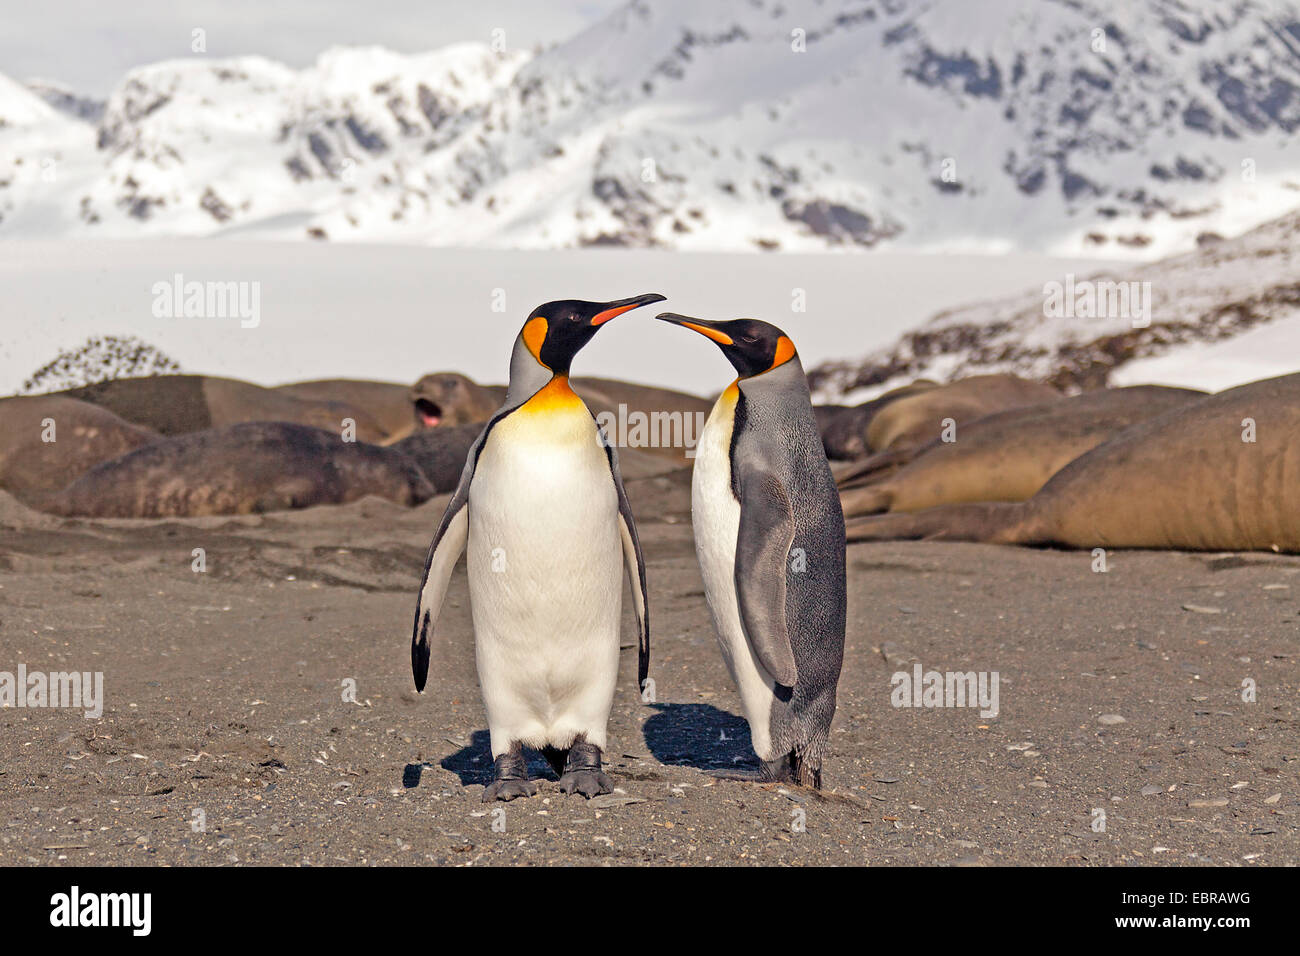 king penguin (Aptenodytes patagonicus), two king penguins on the beach with elephant seals, Antarctica, Suedgeorgien, - Stock Image